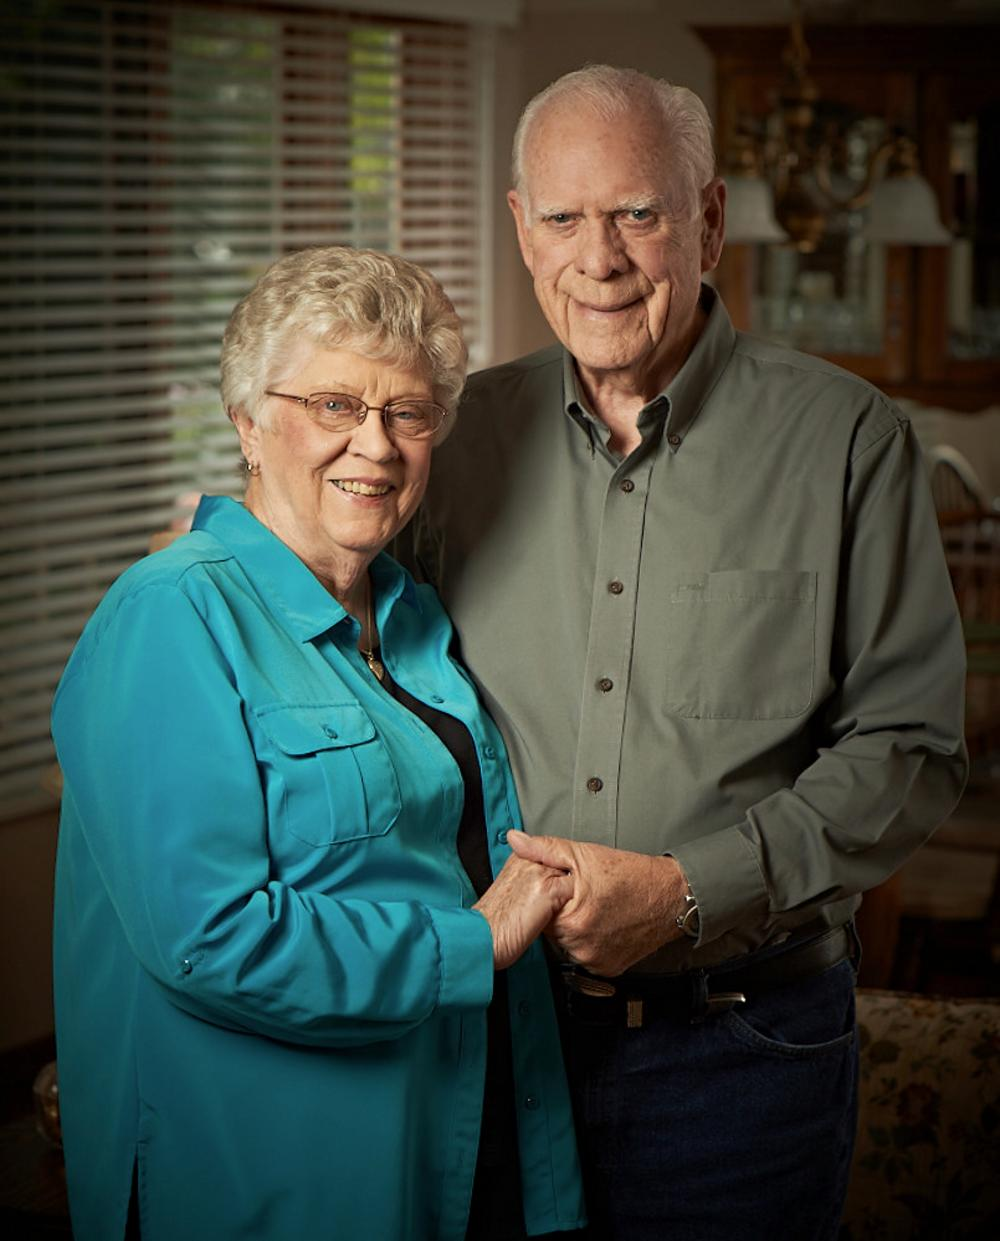 Married for life - Pat and Bob's secrets for a successful marriage